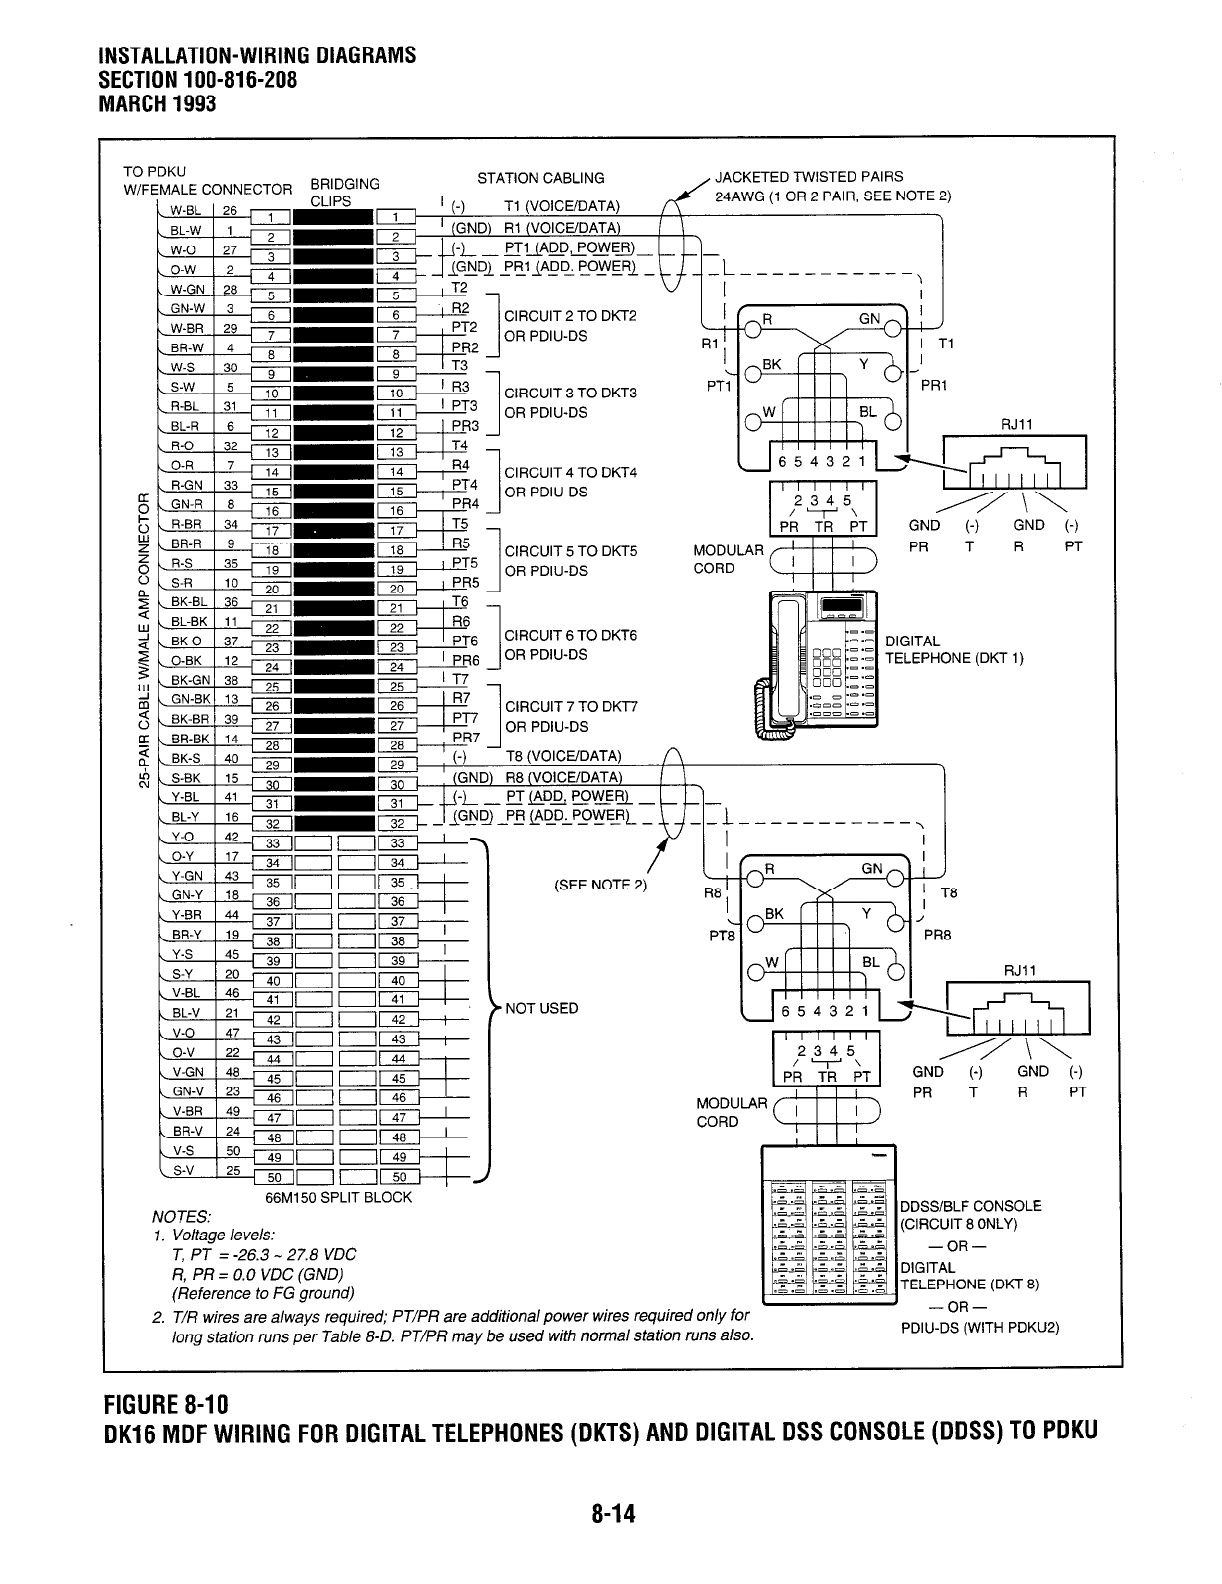 52c30e44 eb3d 42ea a7fe 5e185b64a3b0 bgd0 page 208 of toshiba cell phone strata dk8 user guide Home Phone Wiring Diagram at mr168.co